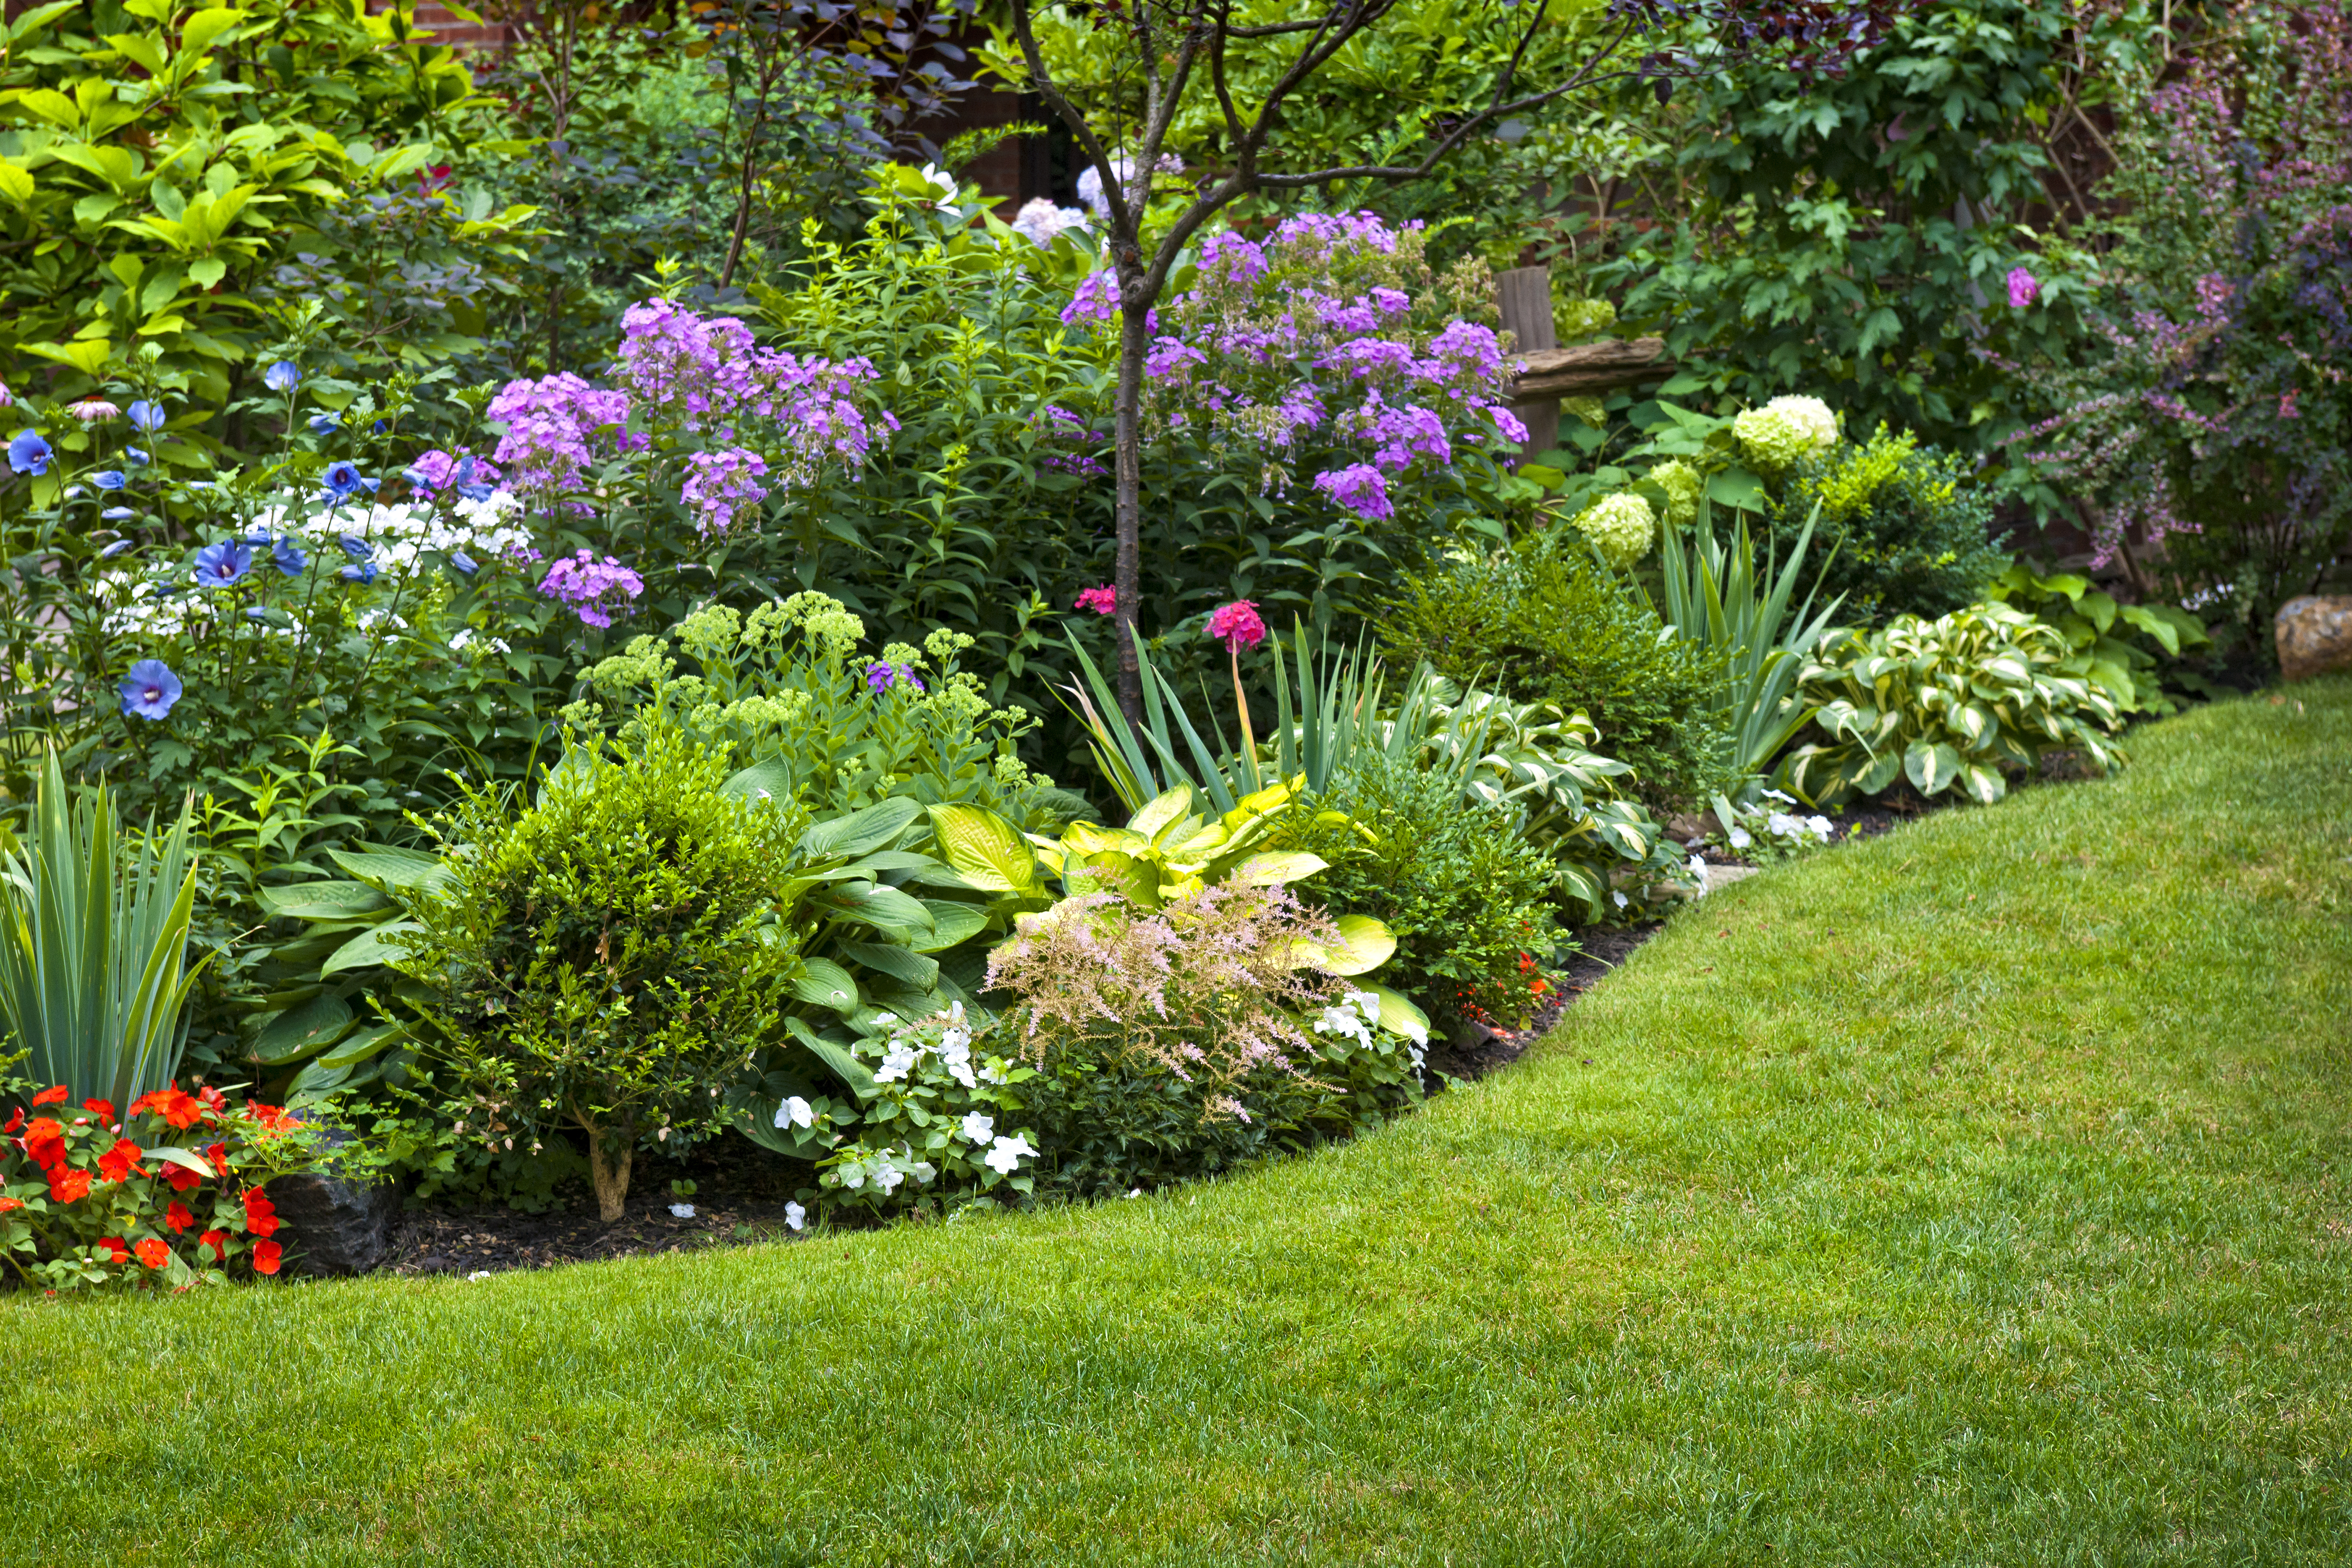 Lush landscaped garden with flowerbed an